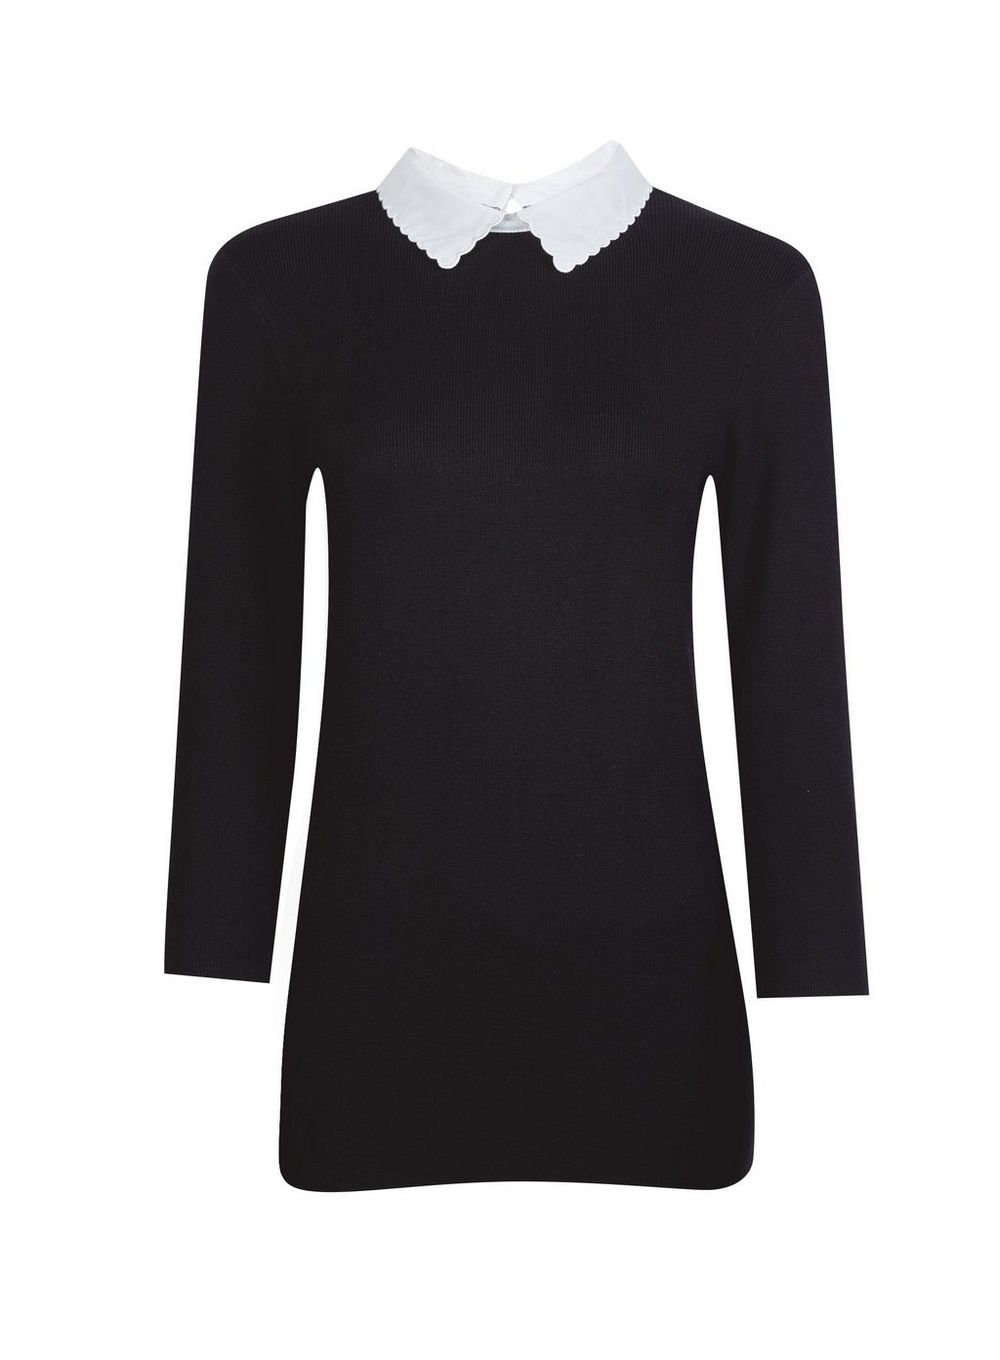 Dorothy Perkins Womens Black Three Quarters Sleeve Two In One Collar Jumper Top